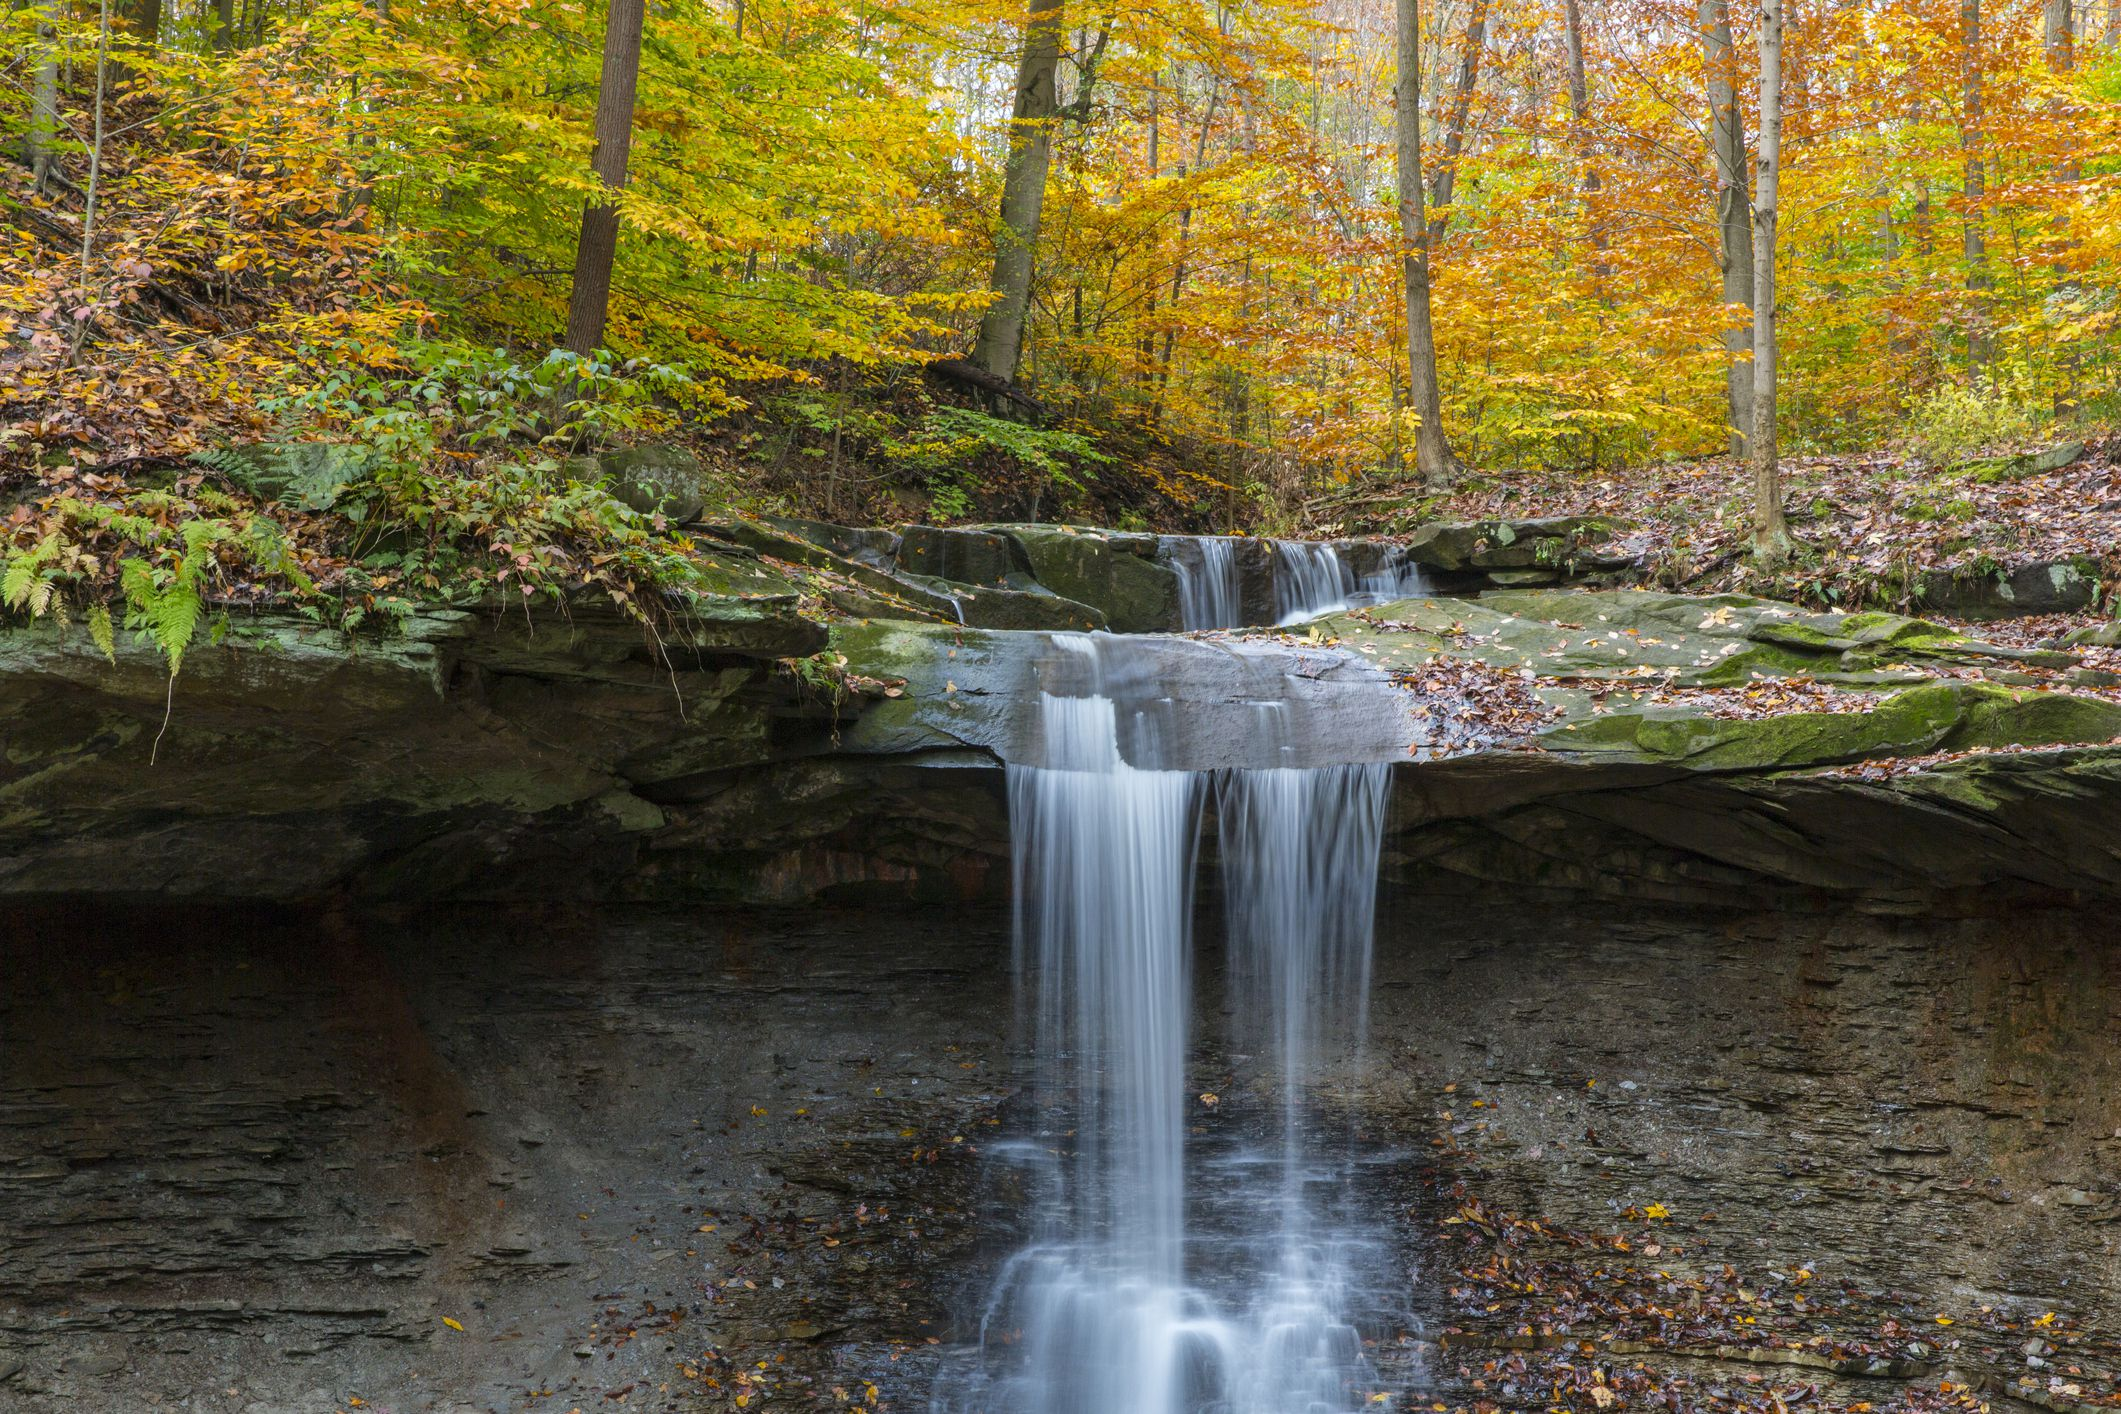 Waterfall in autumn forest, Blue Hens Falls, Cuyahoga National Park, Ohio, USA